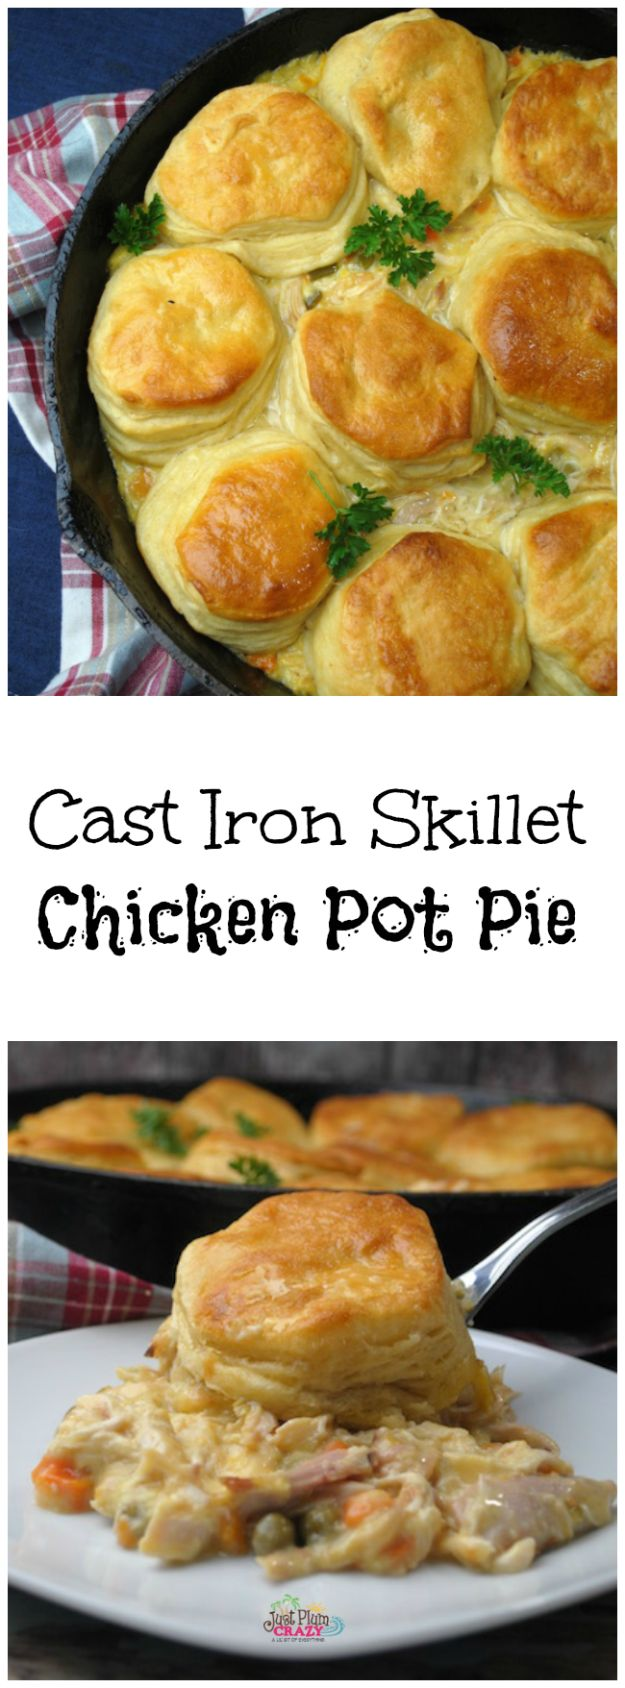 Easy Recipes For Rotisserie Chicken - Cast Iron Skillet Chicken Pot Pie - Healthy Recipe Ideas for Leftovers - Comfort Foods With Chicken - Low Carb and Gluten Free, Crock Pot Meals,#easyrecipes #dinnerideas #recipes